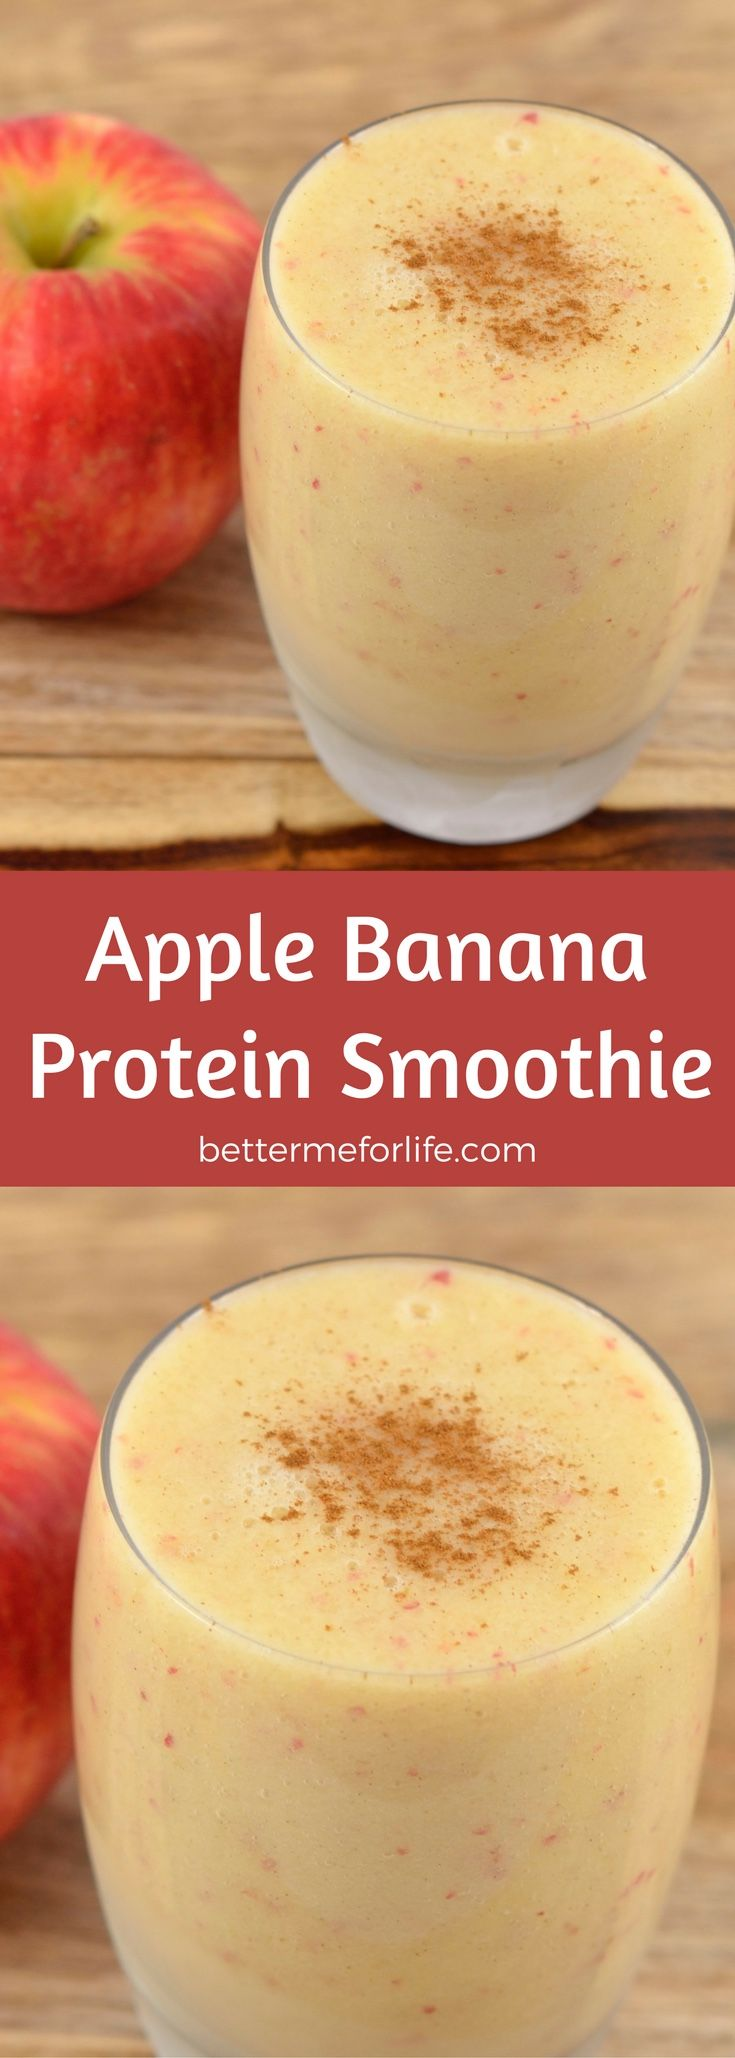 Simple and refreshing, this apple banana protein smoothie is a delightful pick-me-up with loads of vitamins, minerals, and fiber. Find the recipe on BetterMeforLife.com | protein smoothie recipes | protein smoothies | healthy protein smoothies | delicious http://juicerblendercenter.com/tips-in-selecting-the-best-juice-maker/